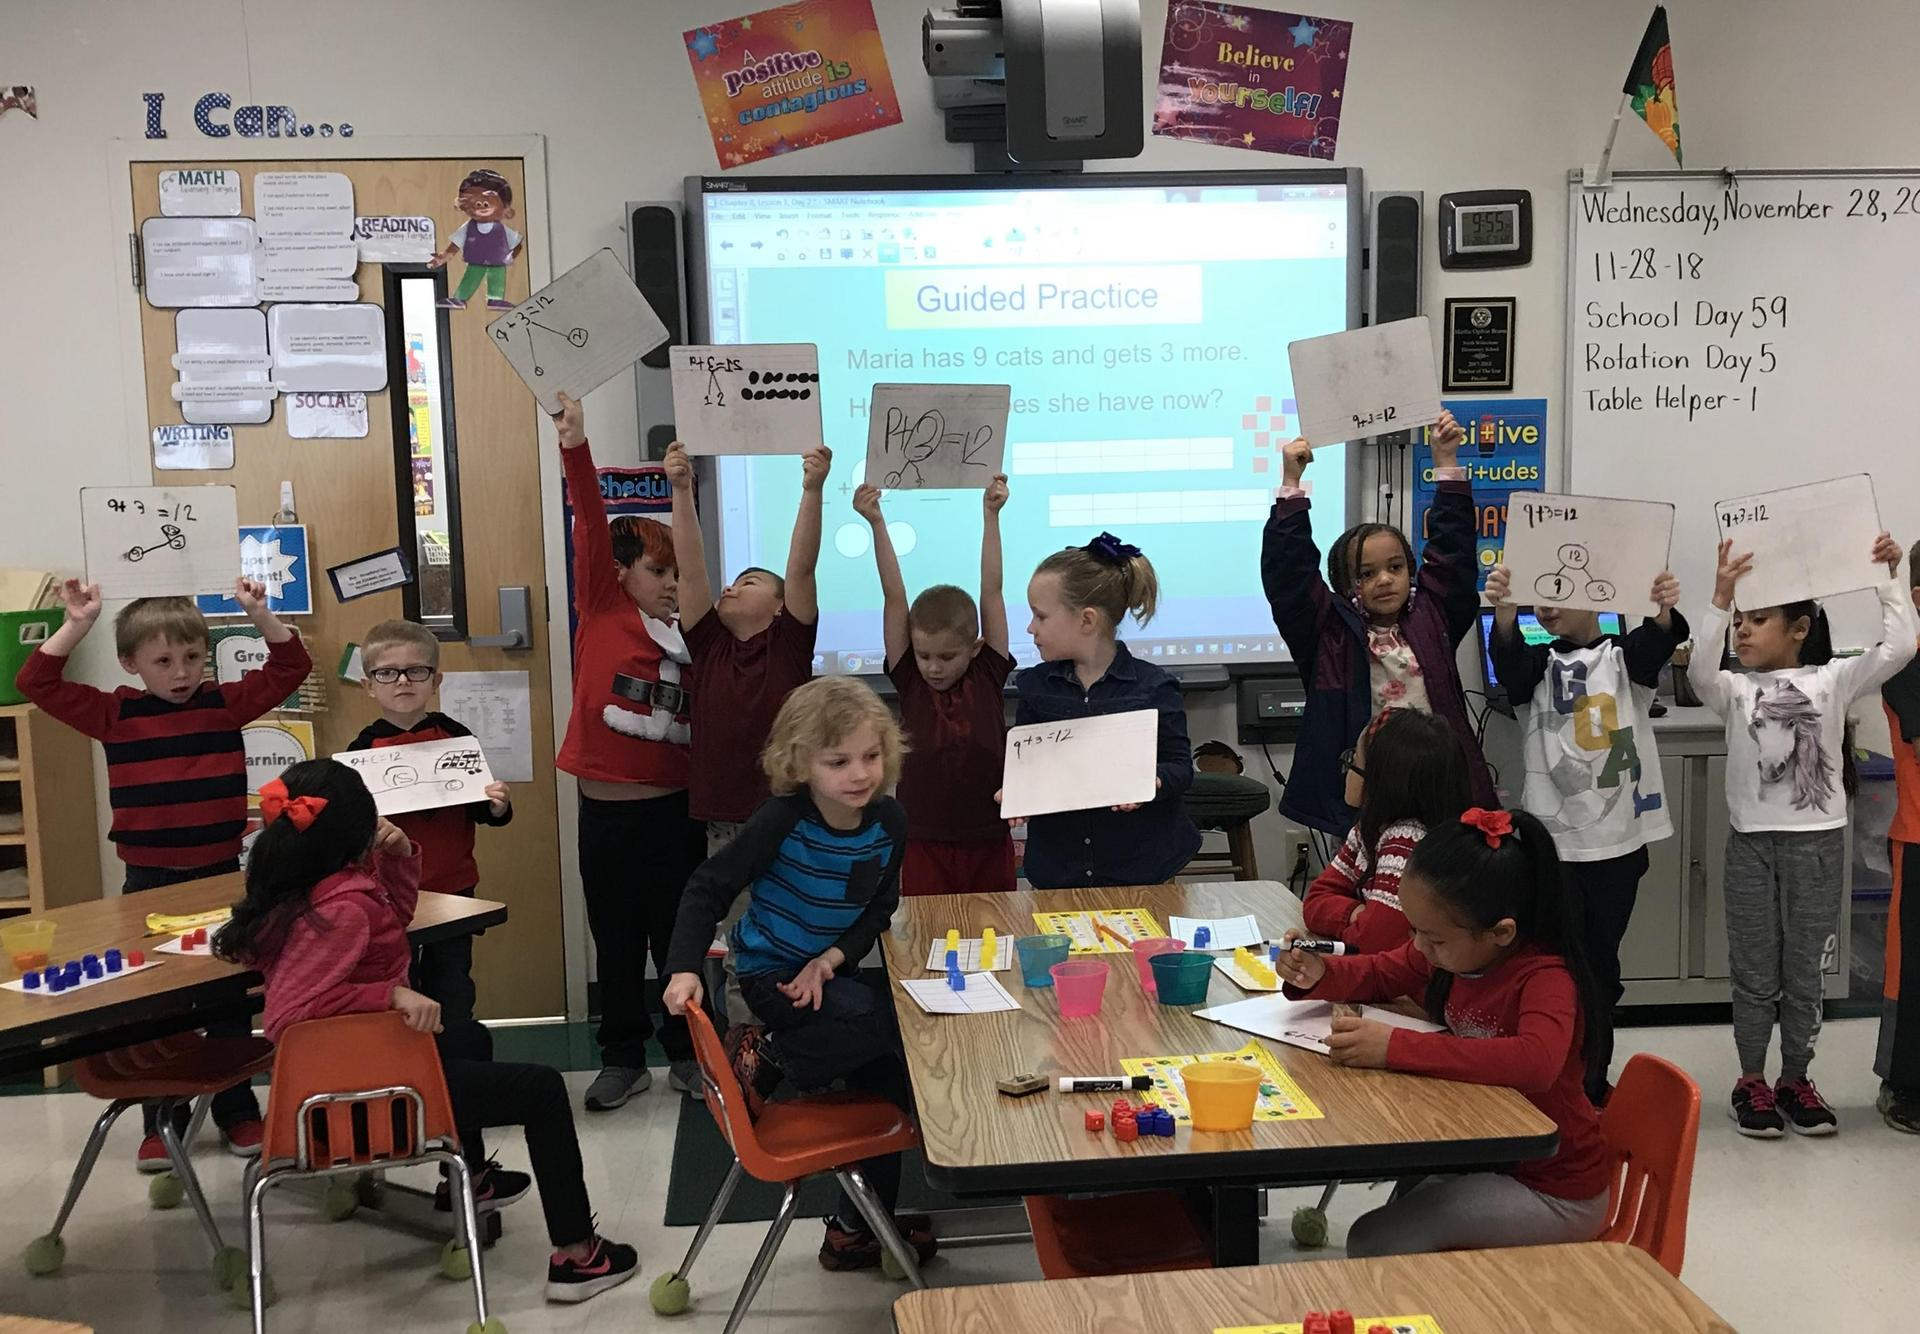 Students at the front of the room holding up signs during Math class